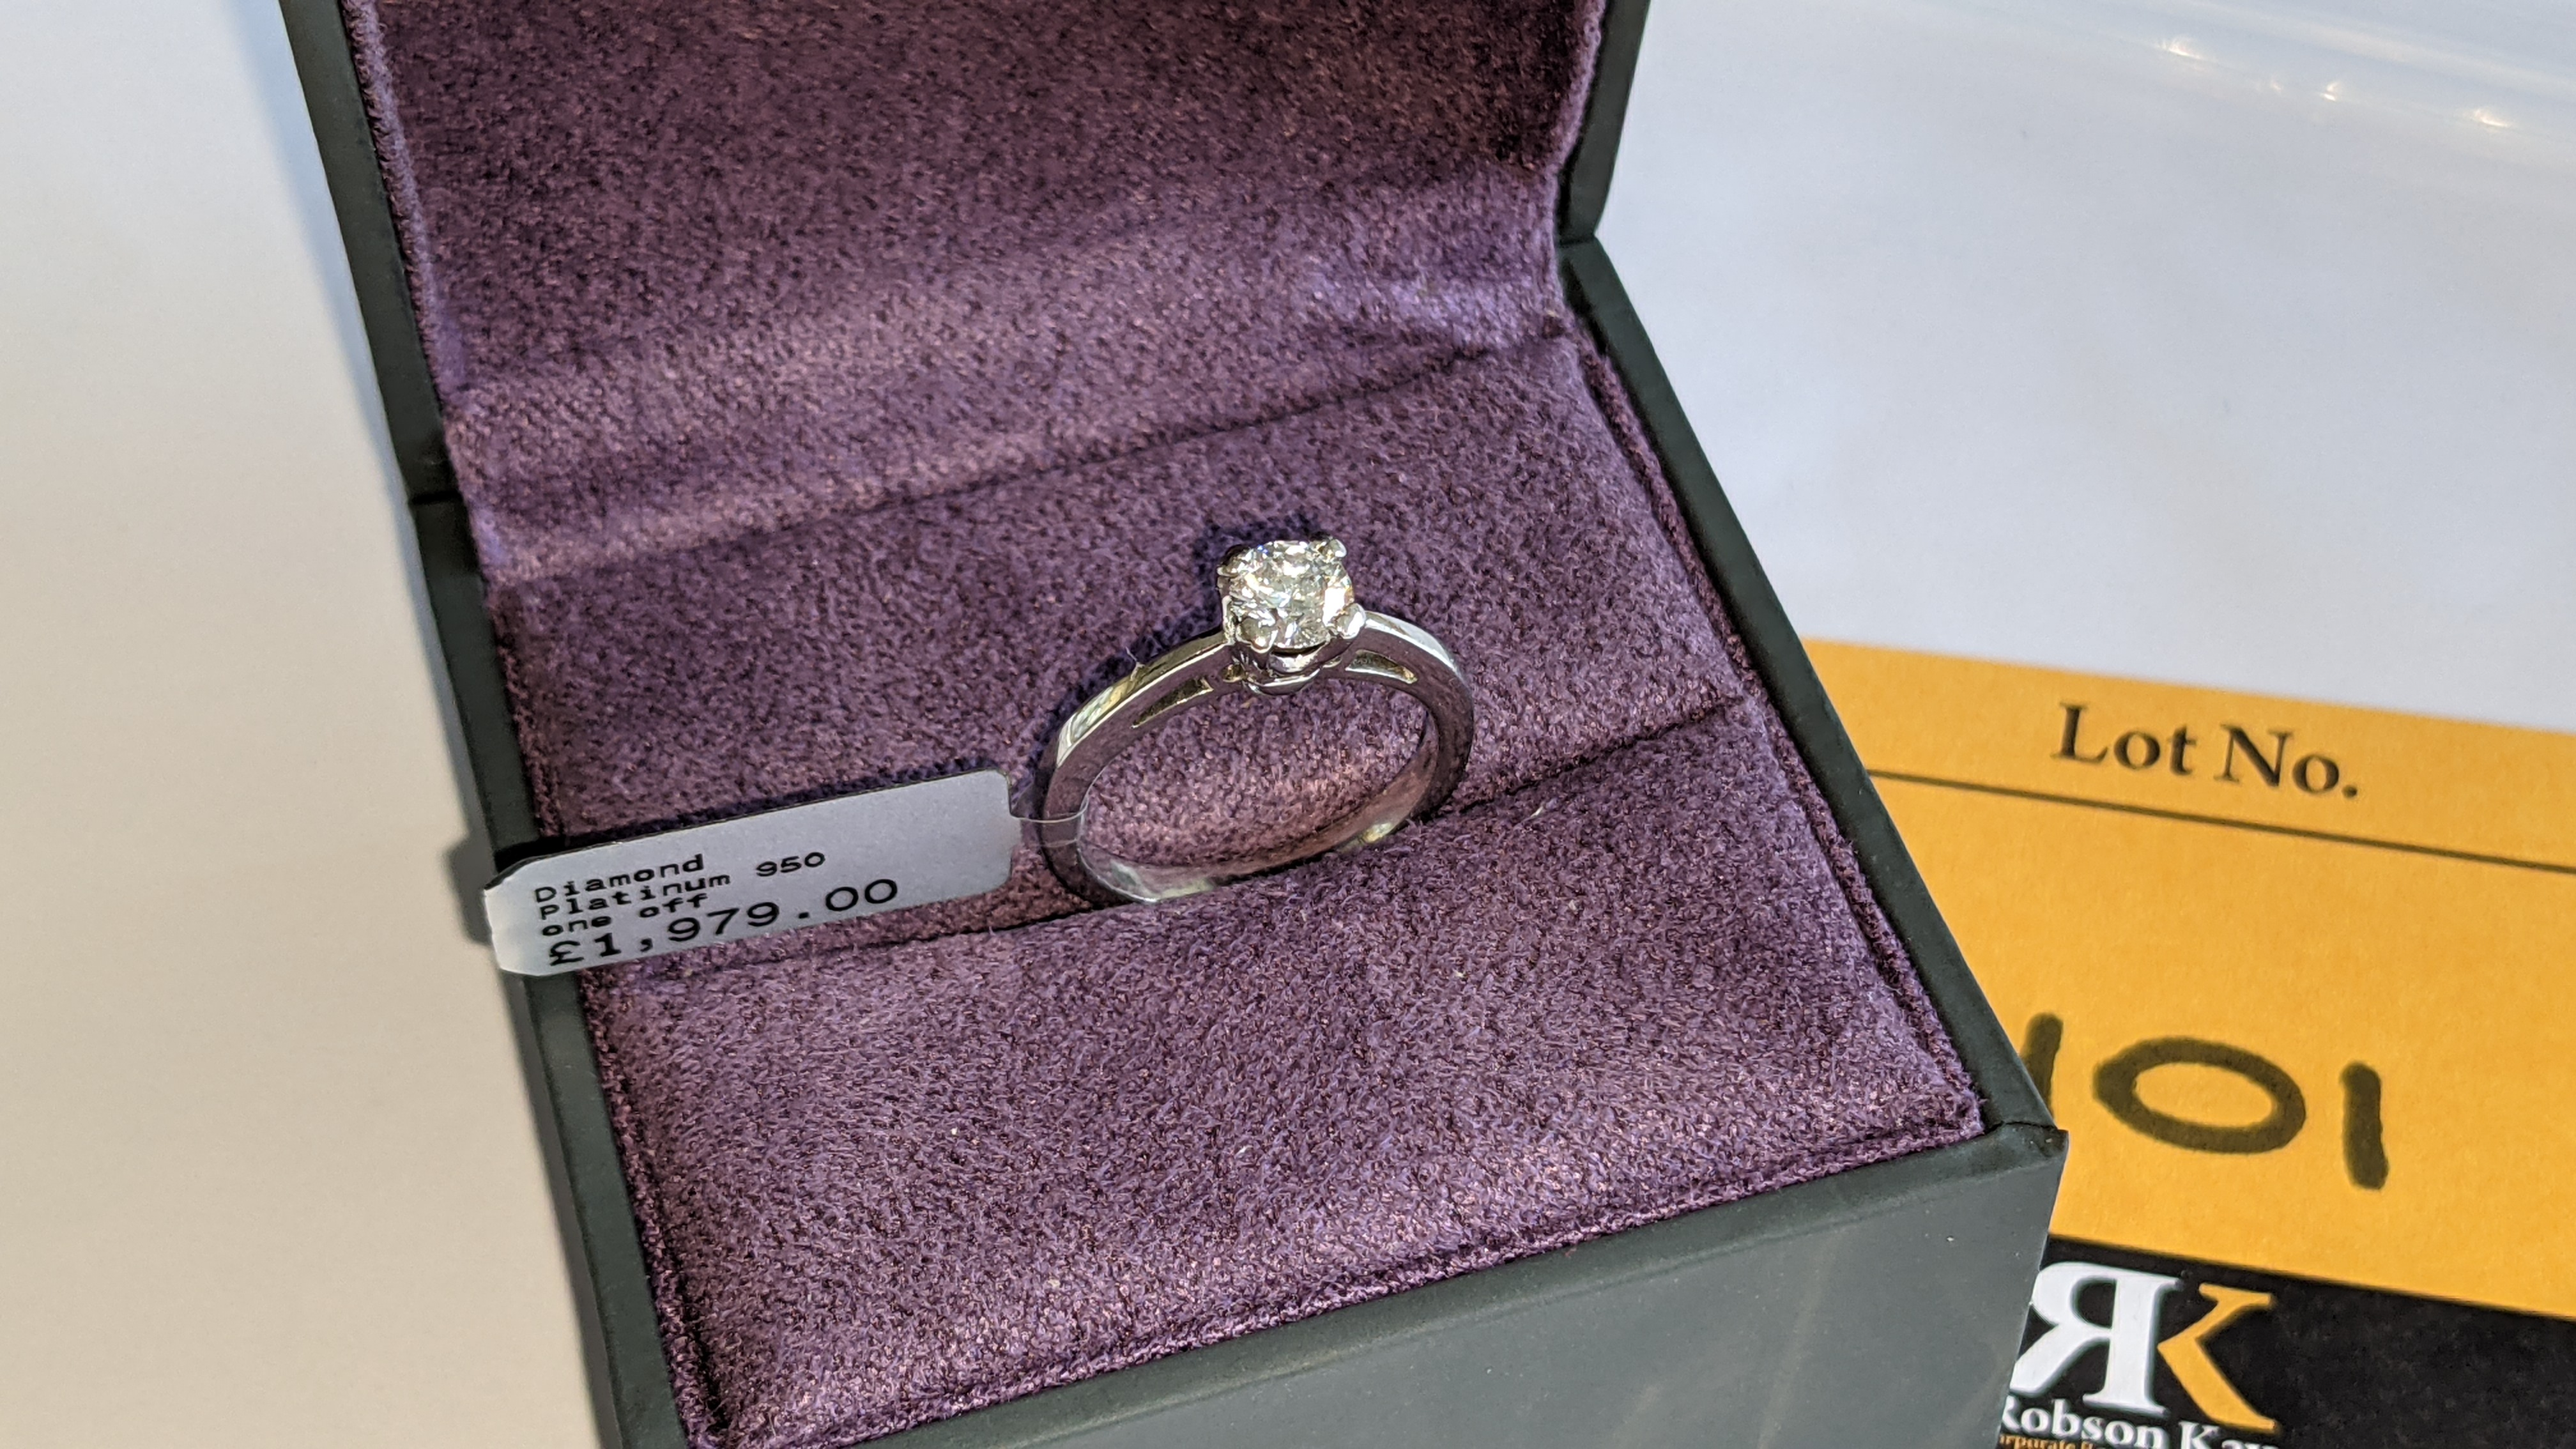 Platinum 950 ring with 0.50ct diamond. Includes diamond report/certification indicating the central - Image 3 of 25